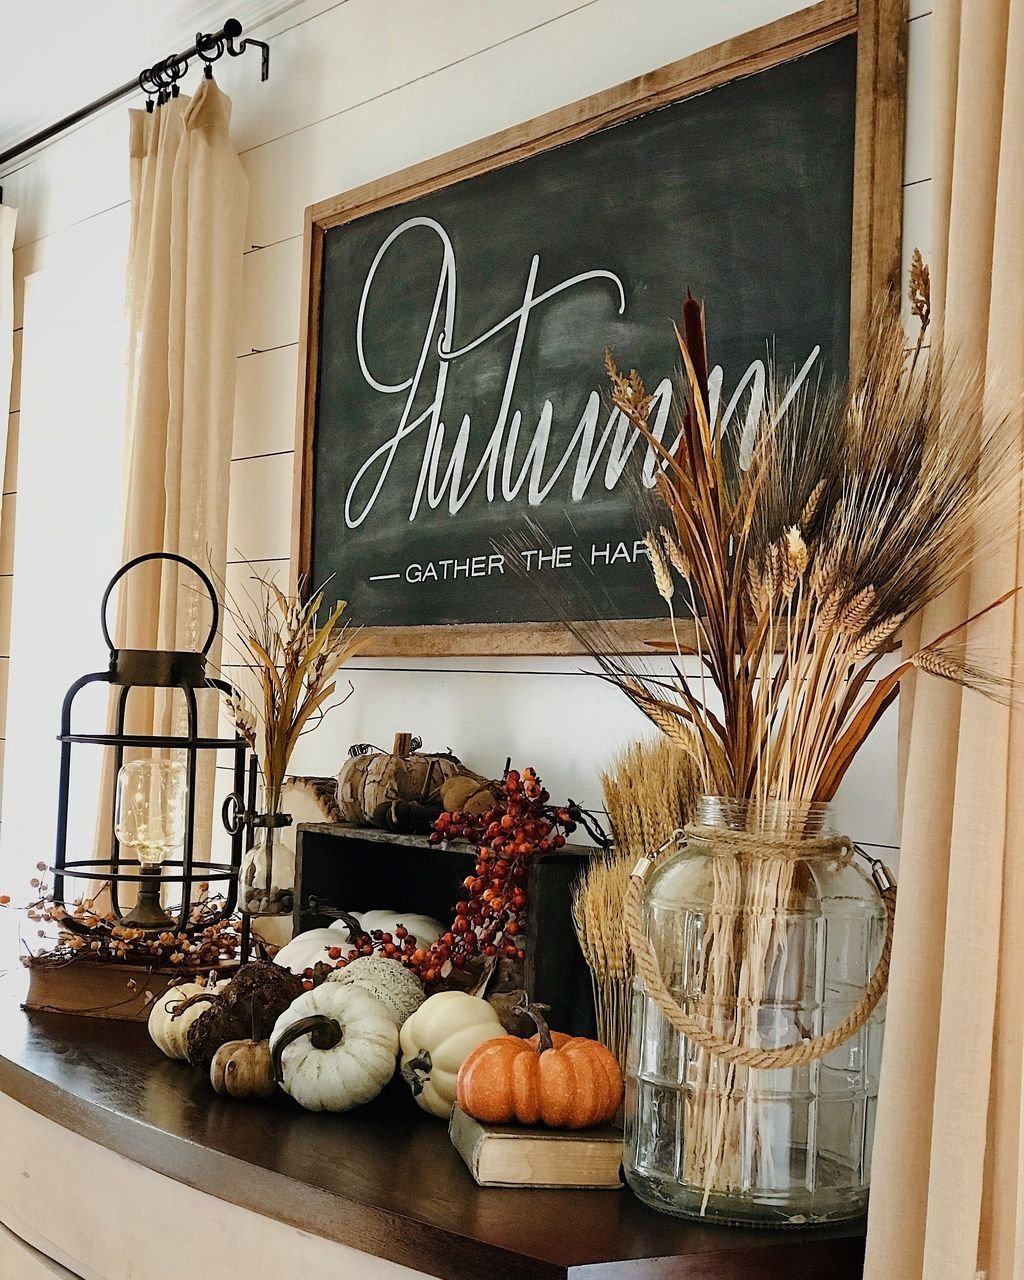 30+ Catchy Fall Home Decor Ideas That Will Inspire You #falldecorideas